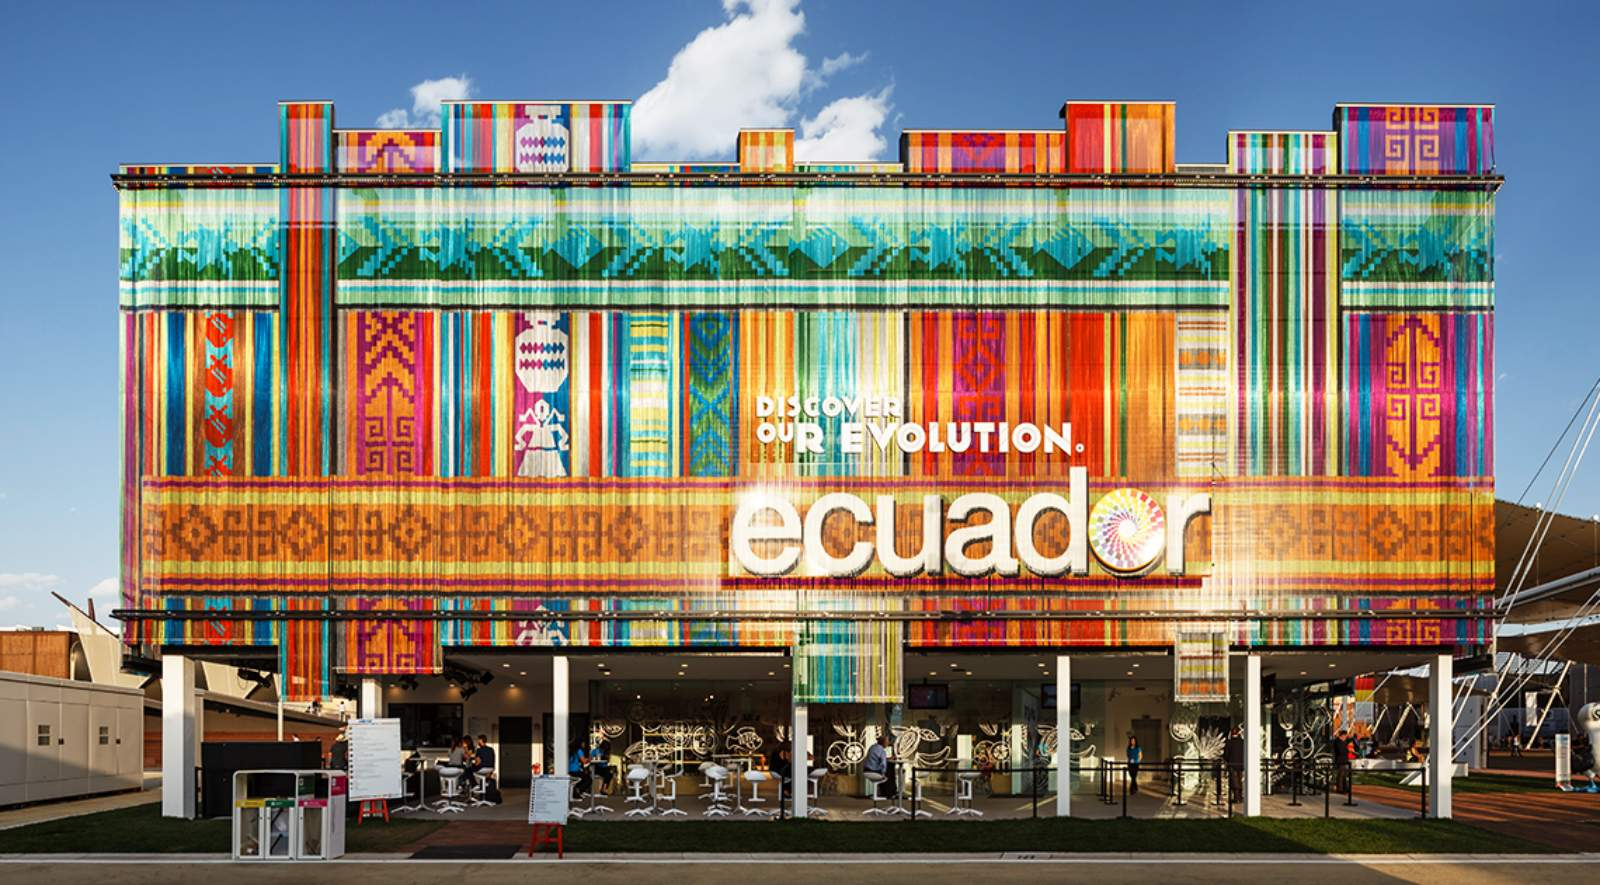 Ecuador pavilion expo 2015 by kriskadecor zorrozua y for Home decor expo 2015